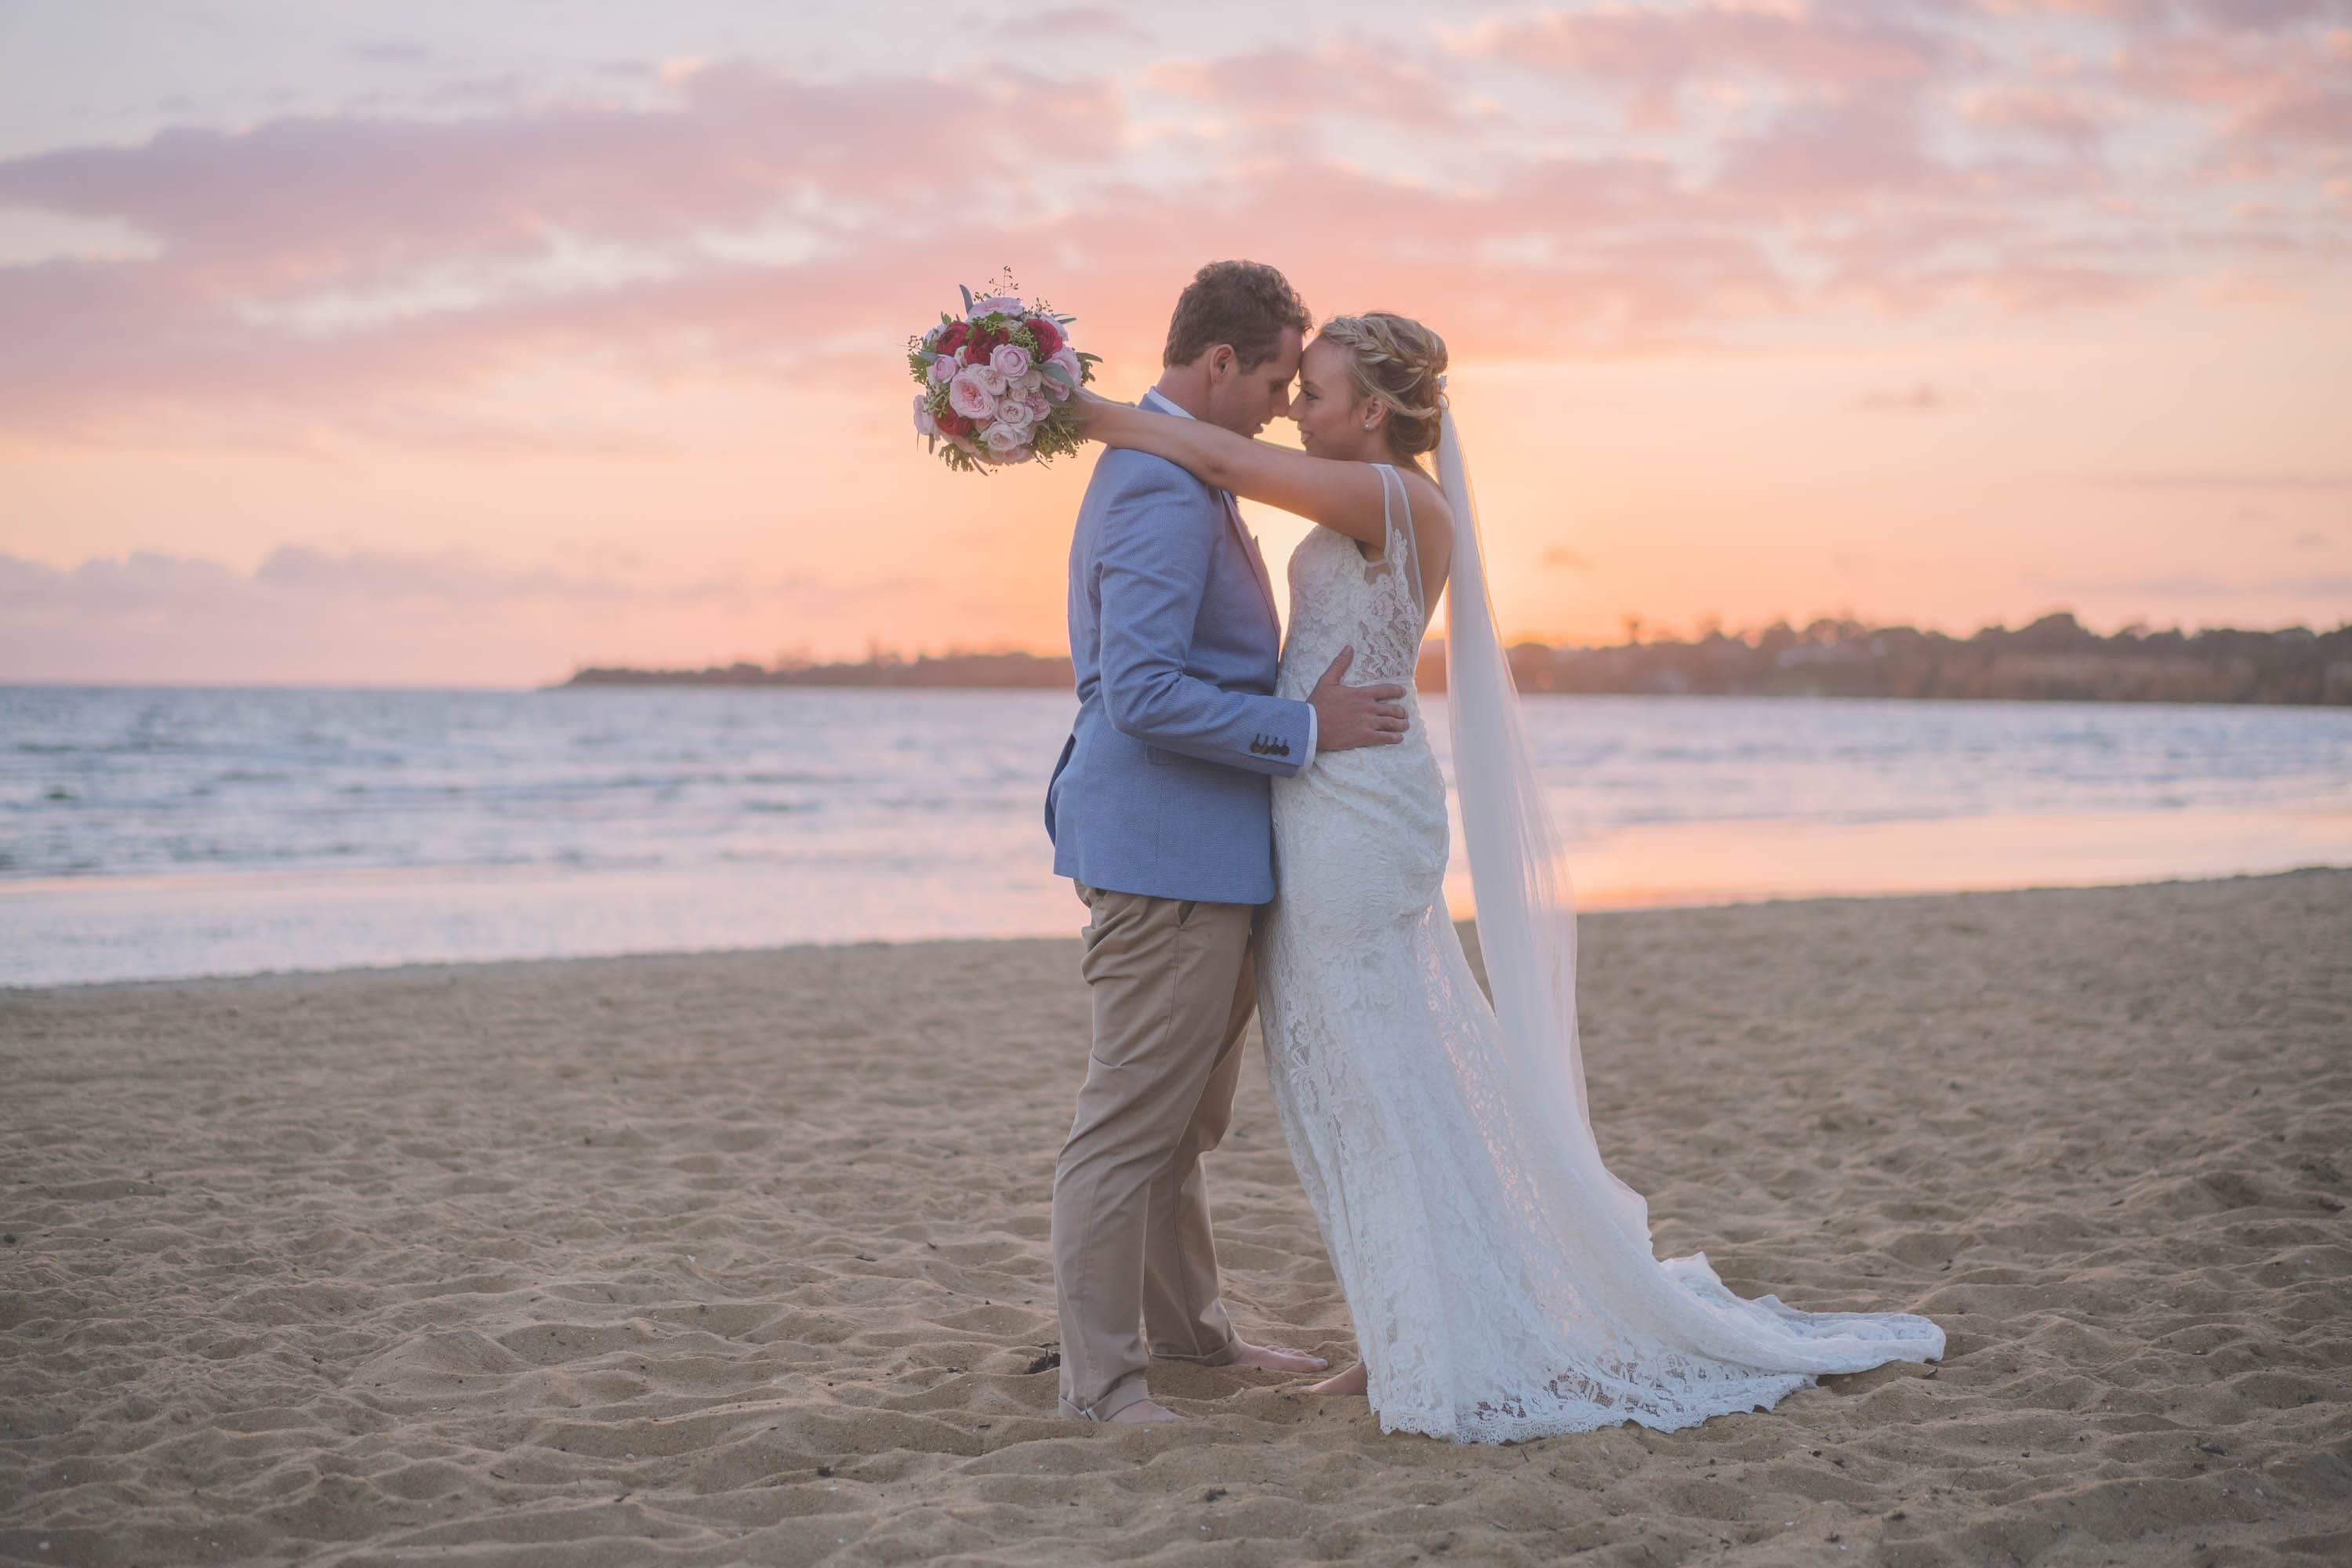 Wedding photography in Melbourne of a couple on a beach at sunset